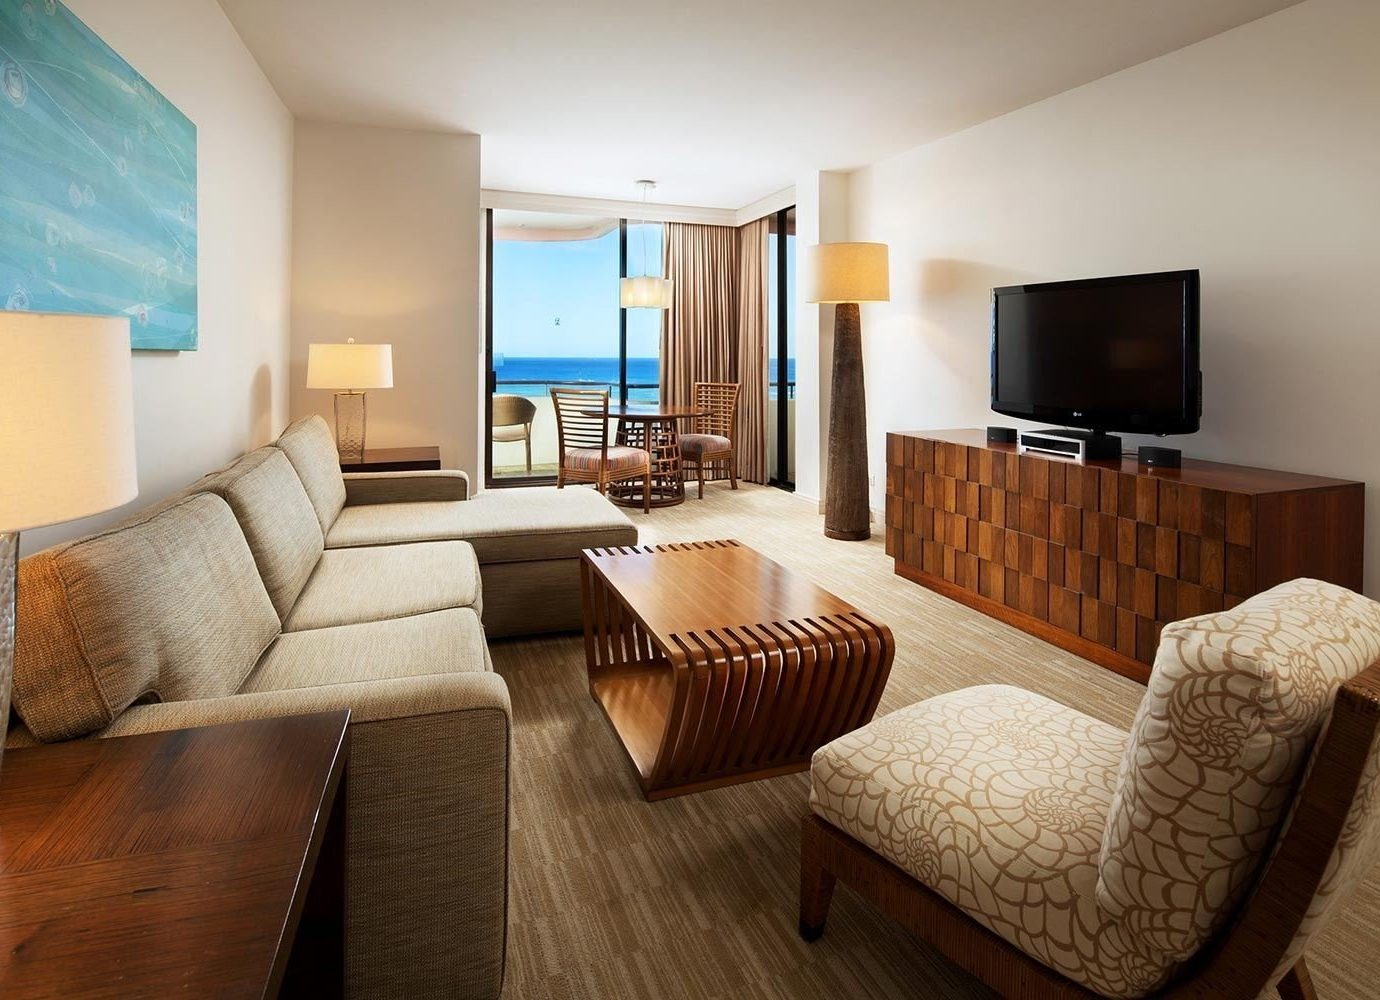 Boutique Hotels Hawaii Honolulu Hotels indoor floor room sofa wall Living ceiling Suite living room interior design real estate hotel interior designer penthouse apartment comfort furniture area wood decorated flat